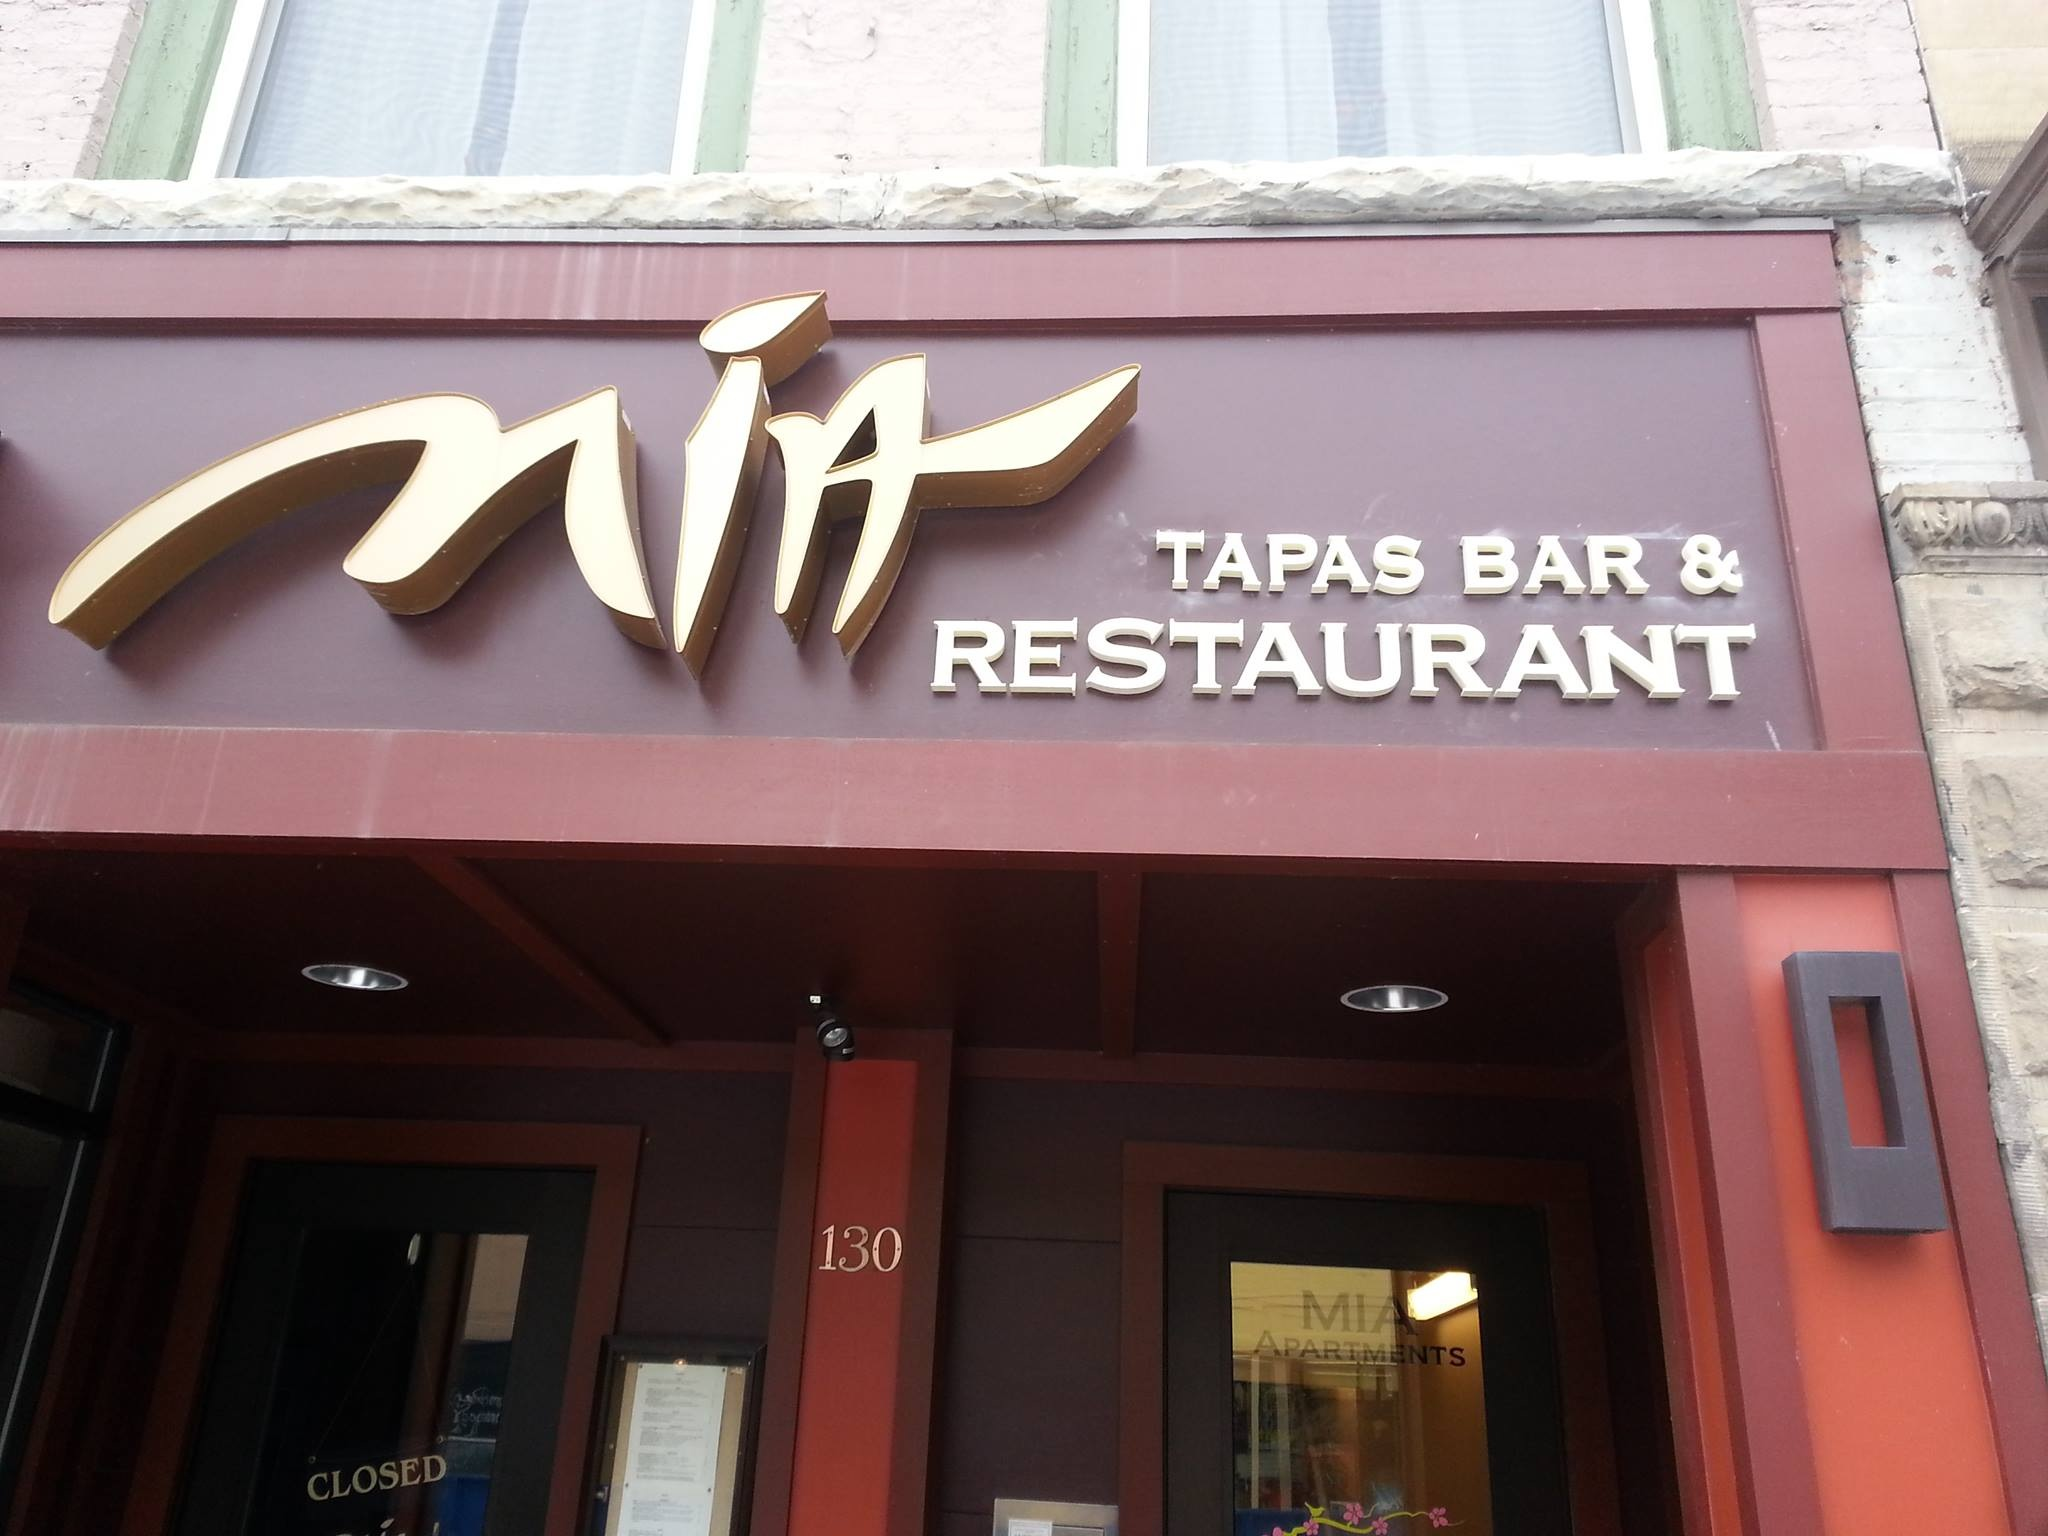 Downtown ithaca eatery gets new name menu makeover for Asia cuisine ithaca menu